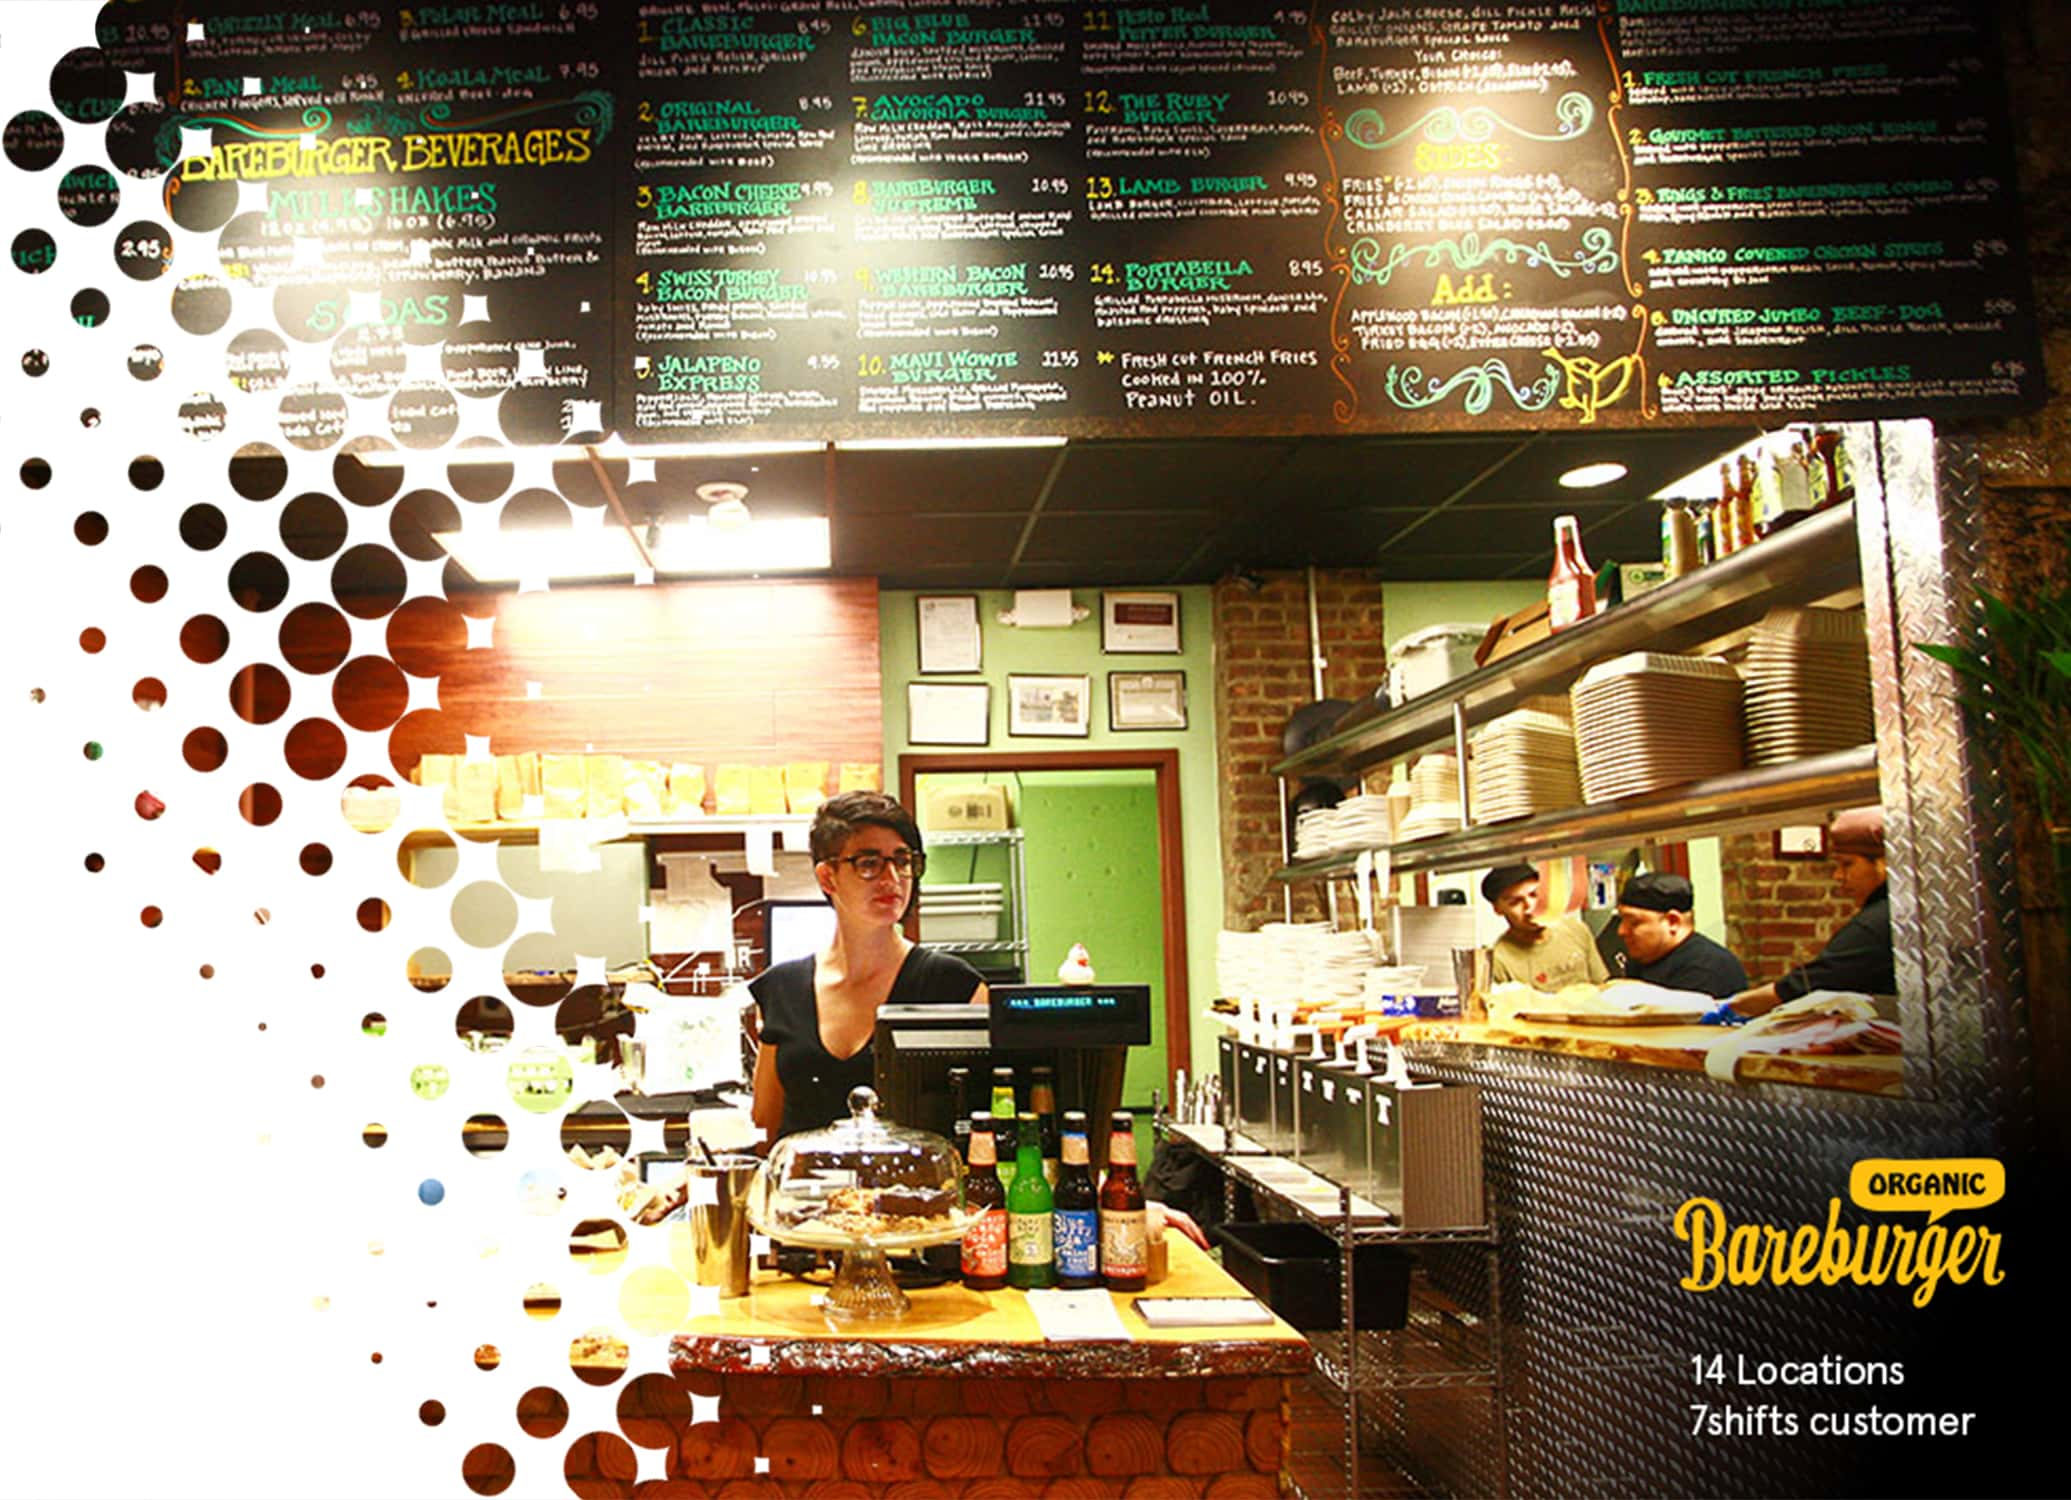 Bareburger a 14 location 7shifts client restaurant image